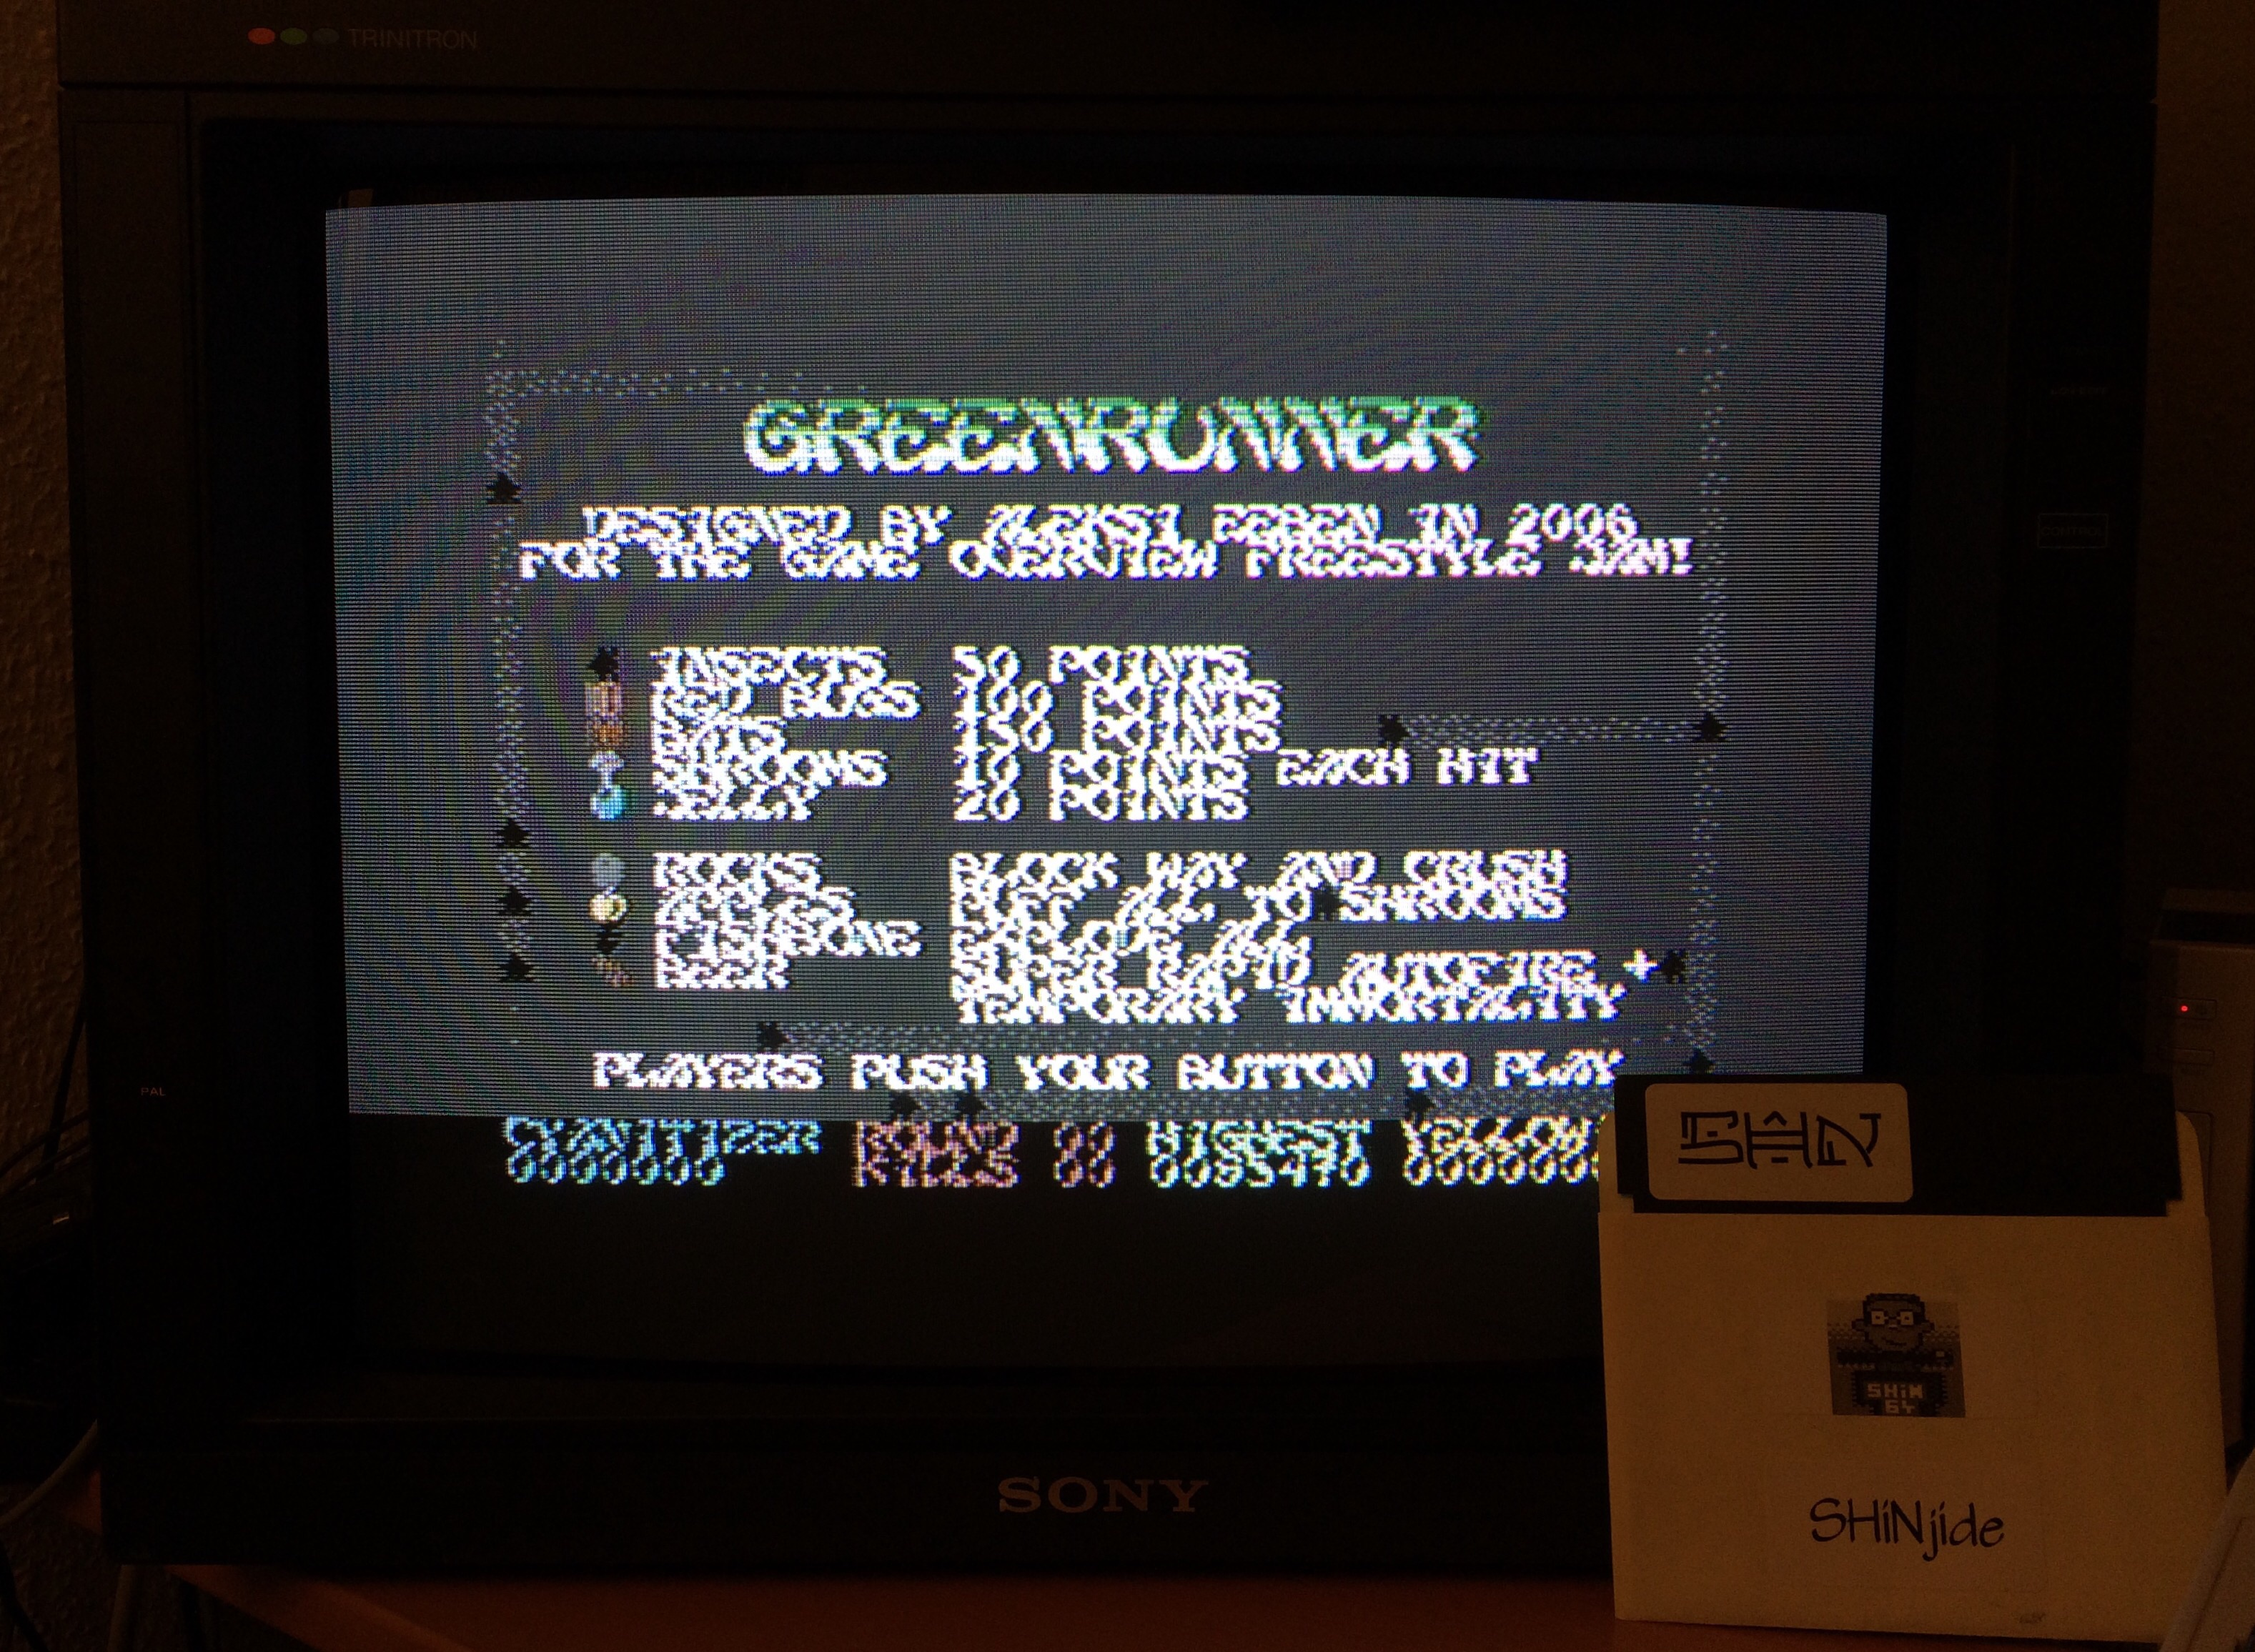 SHiNjide: Greenrunner (Commodore 64) 85,470 points on 2015-01-04 15:03:46